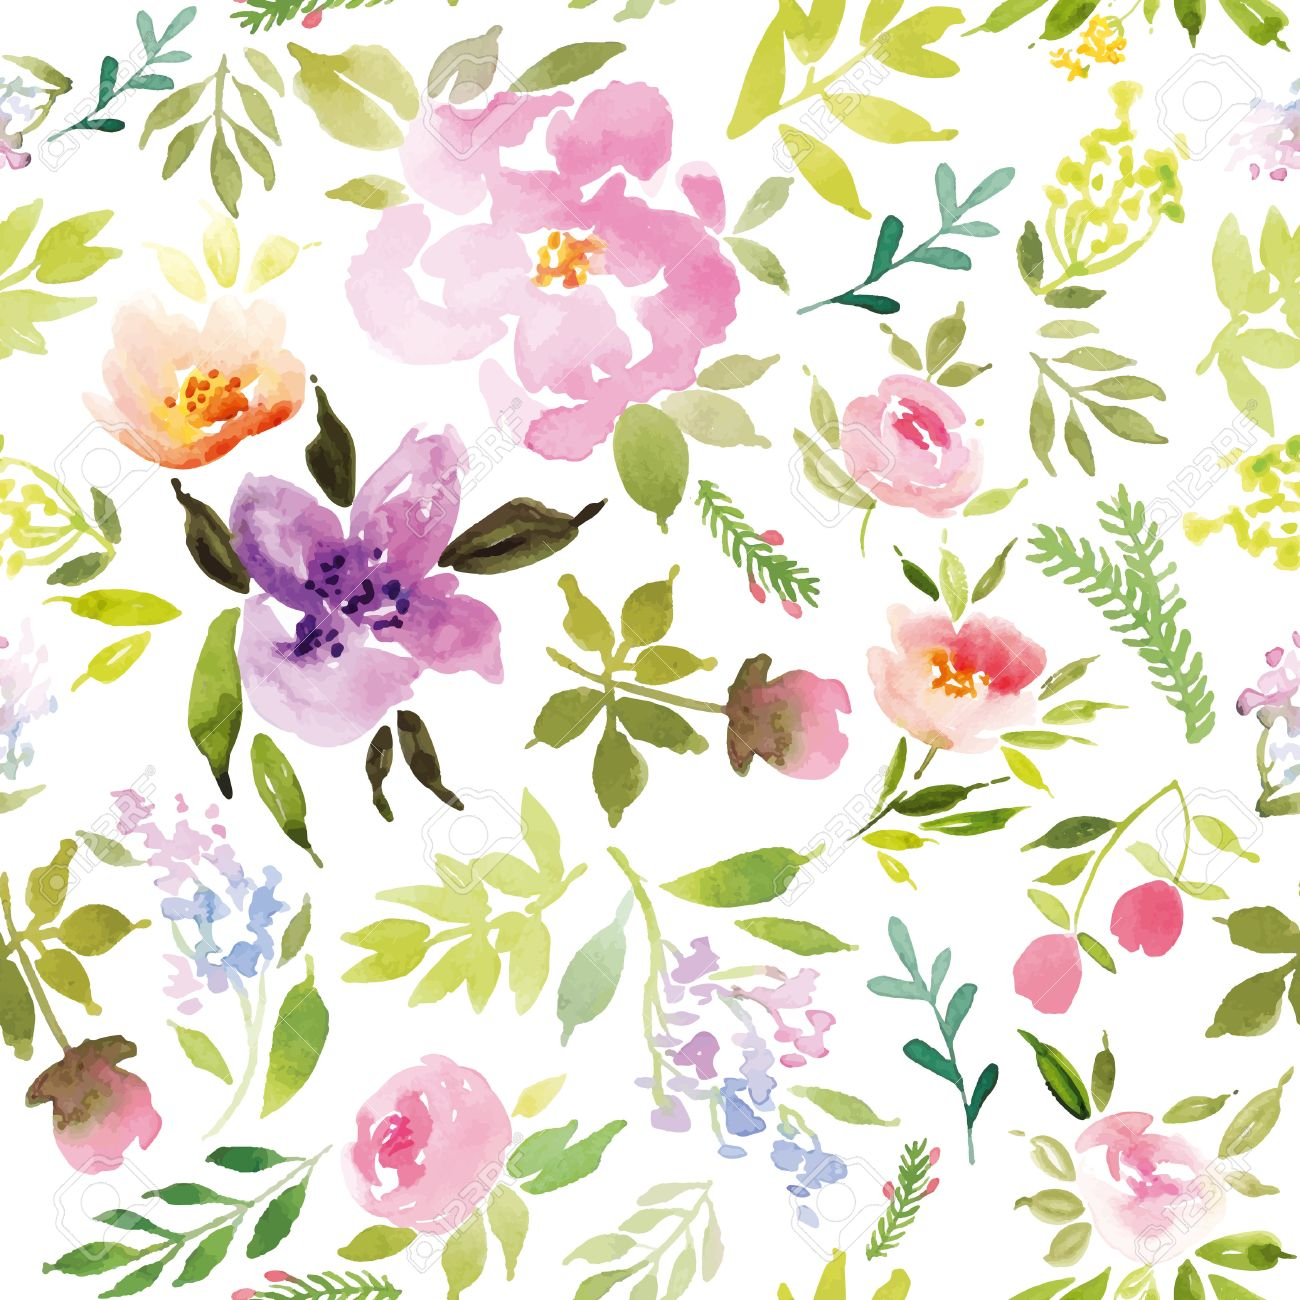 27 974 small flower stock vector illustration and royalty free